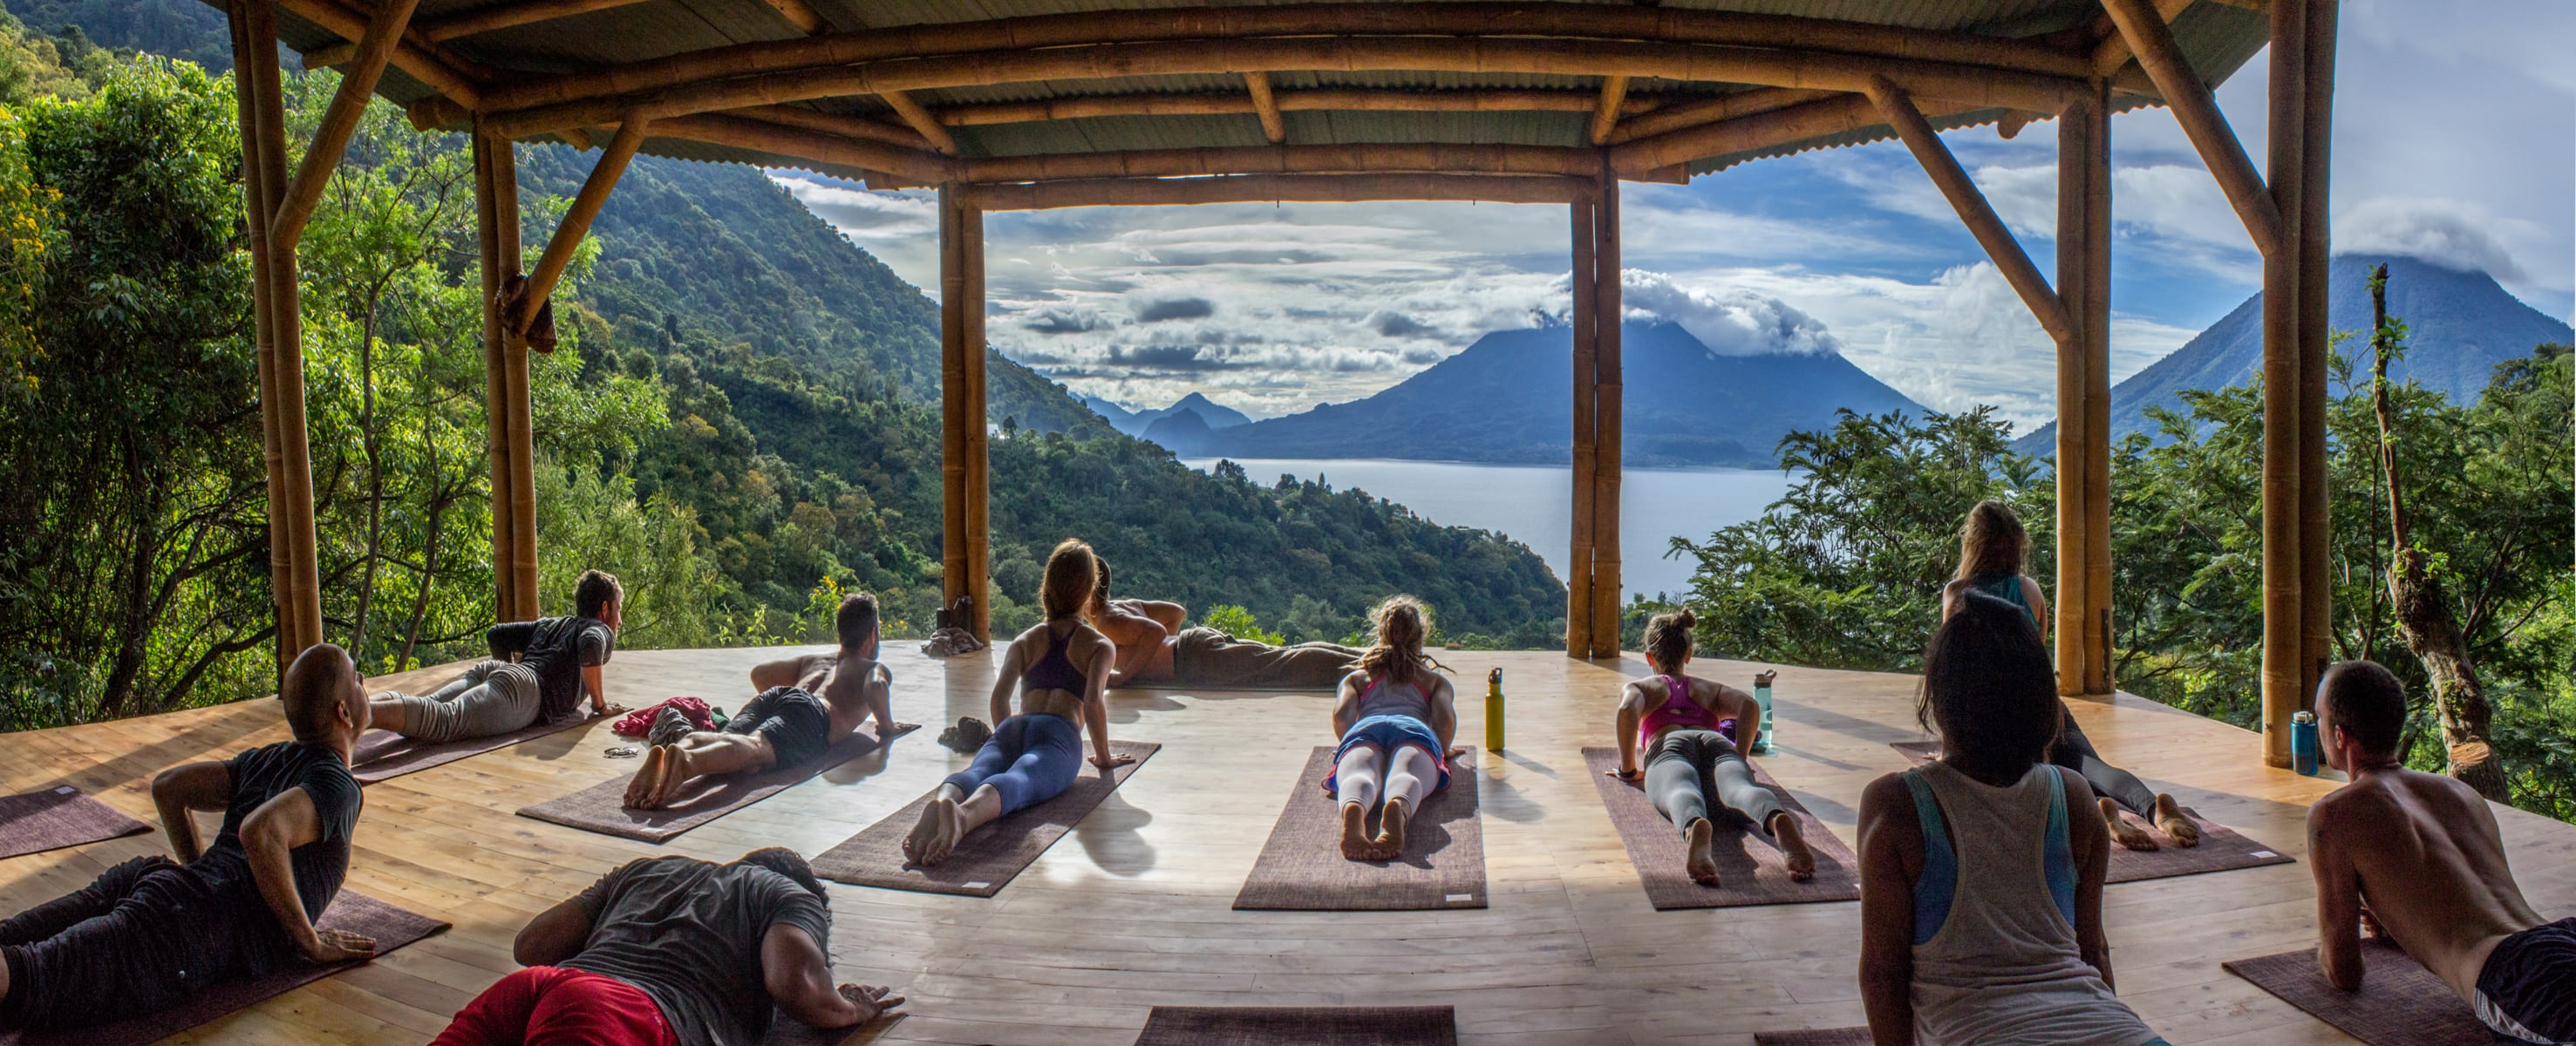 womens sacred expression retreat in lake atitlan guatemala